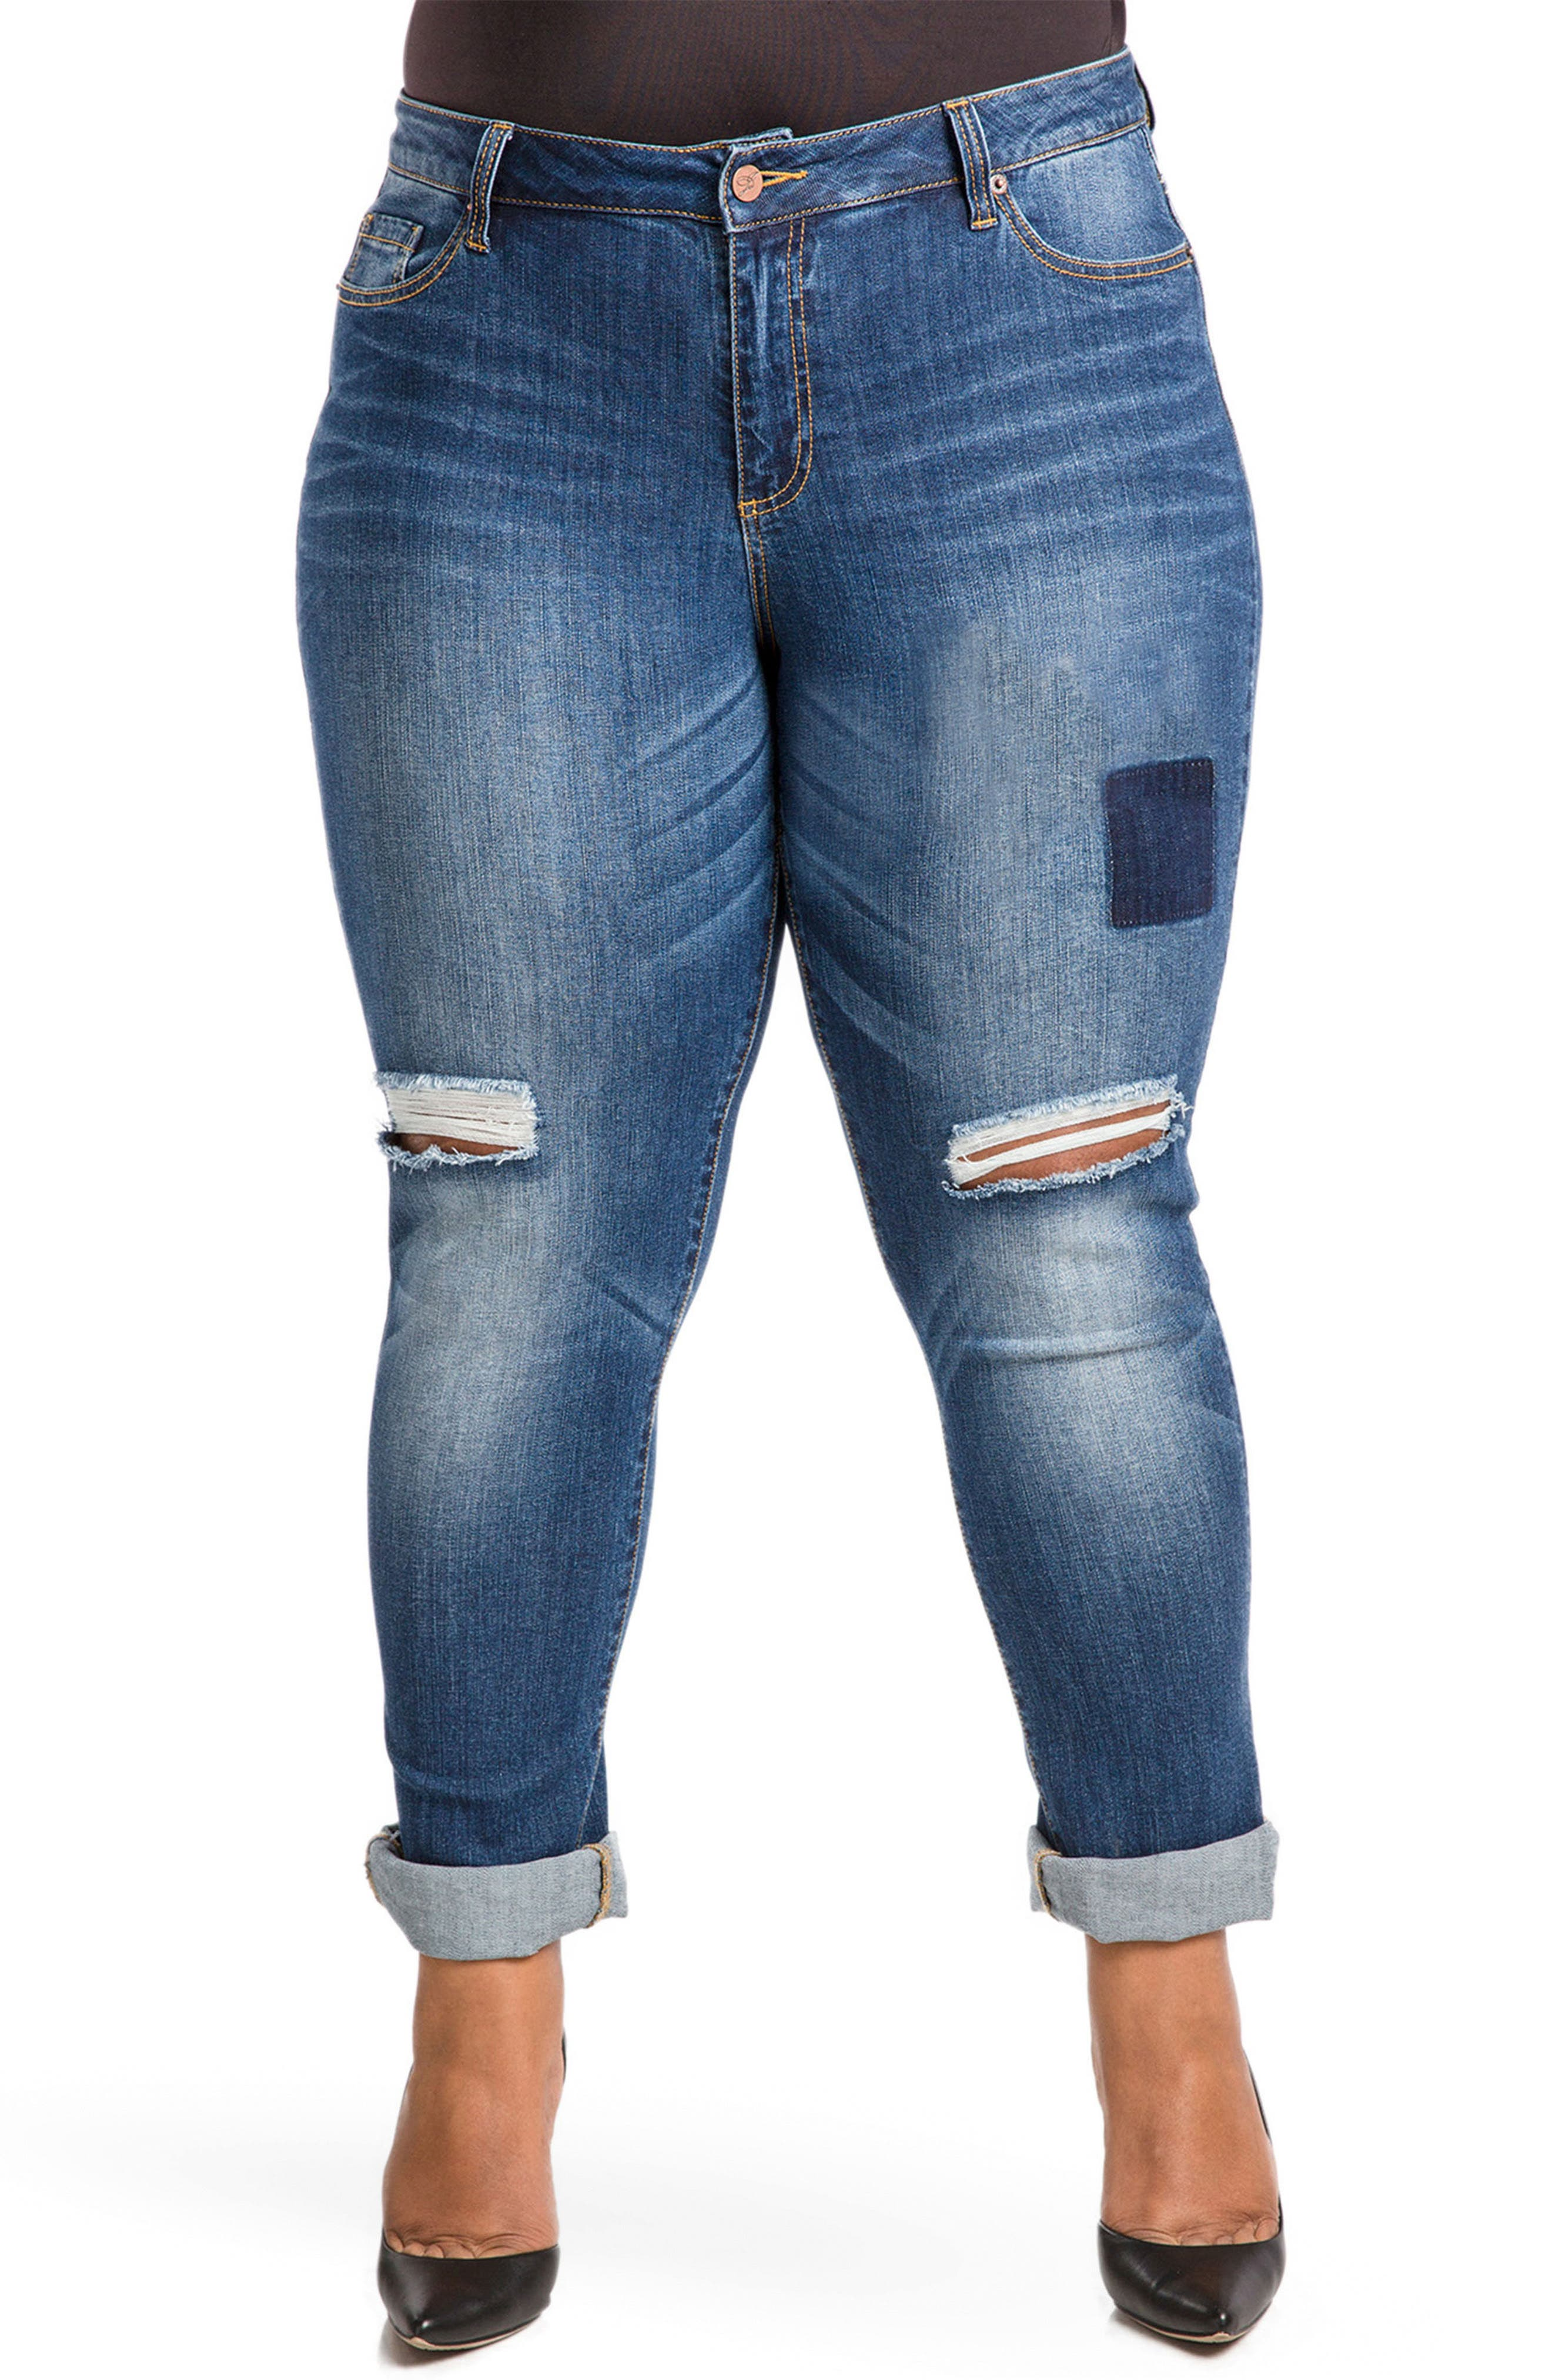 Alternate Image 1 Selected - Poetic Justice Shaw Curvy Fit Boyfriend Jeans (Plus Size)